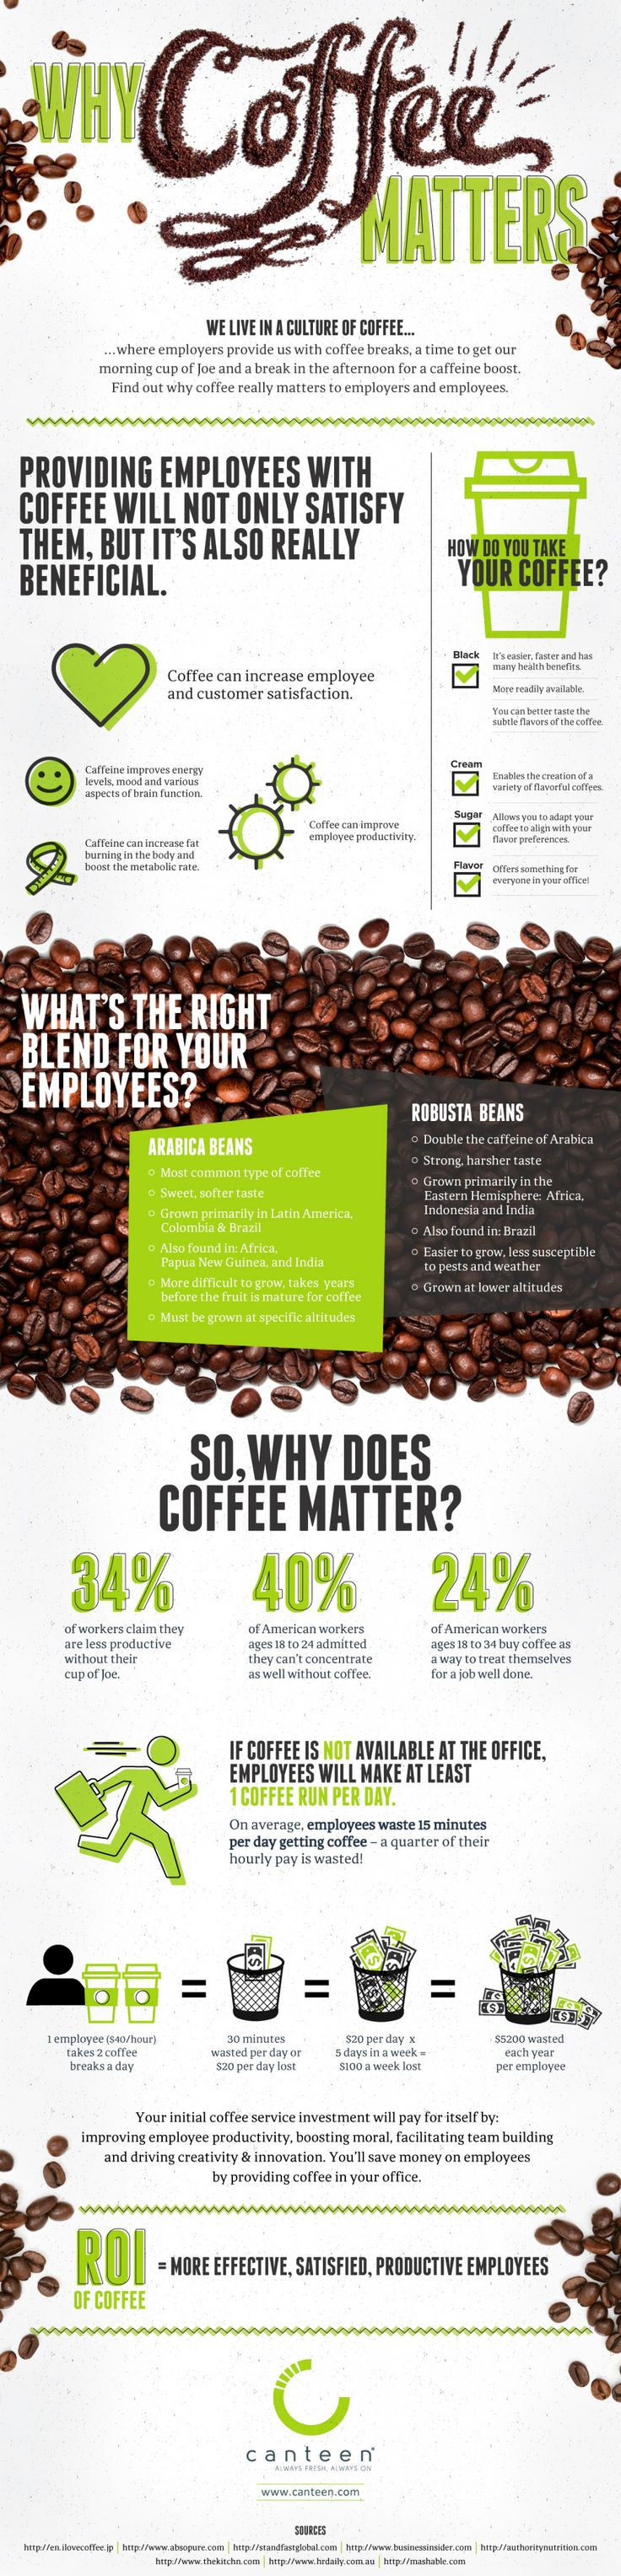 Why Coffee Matters #infographic